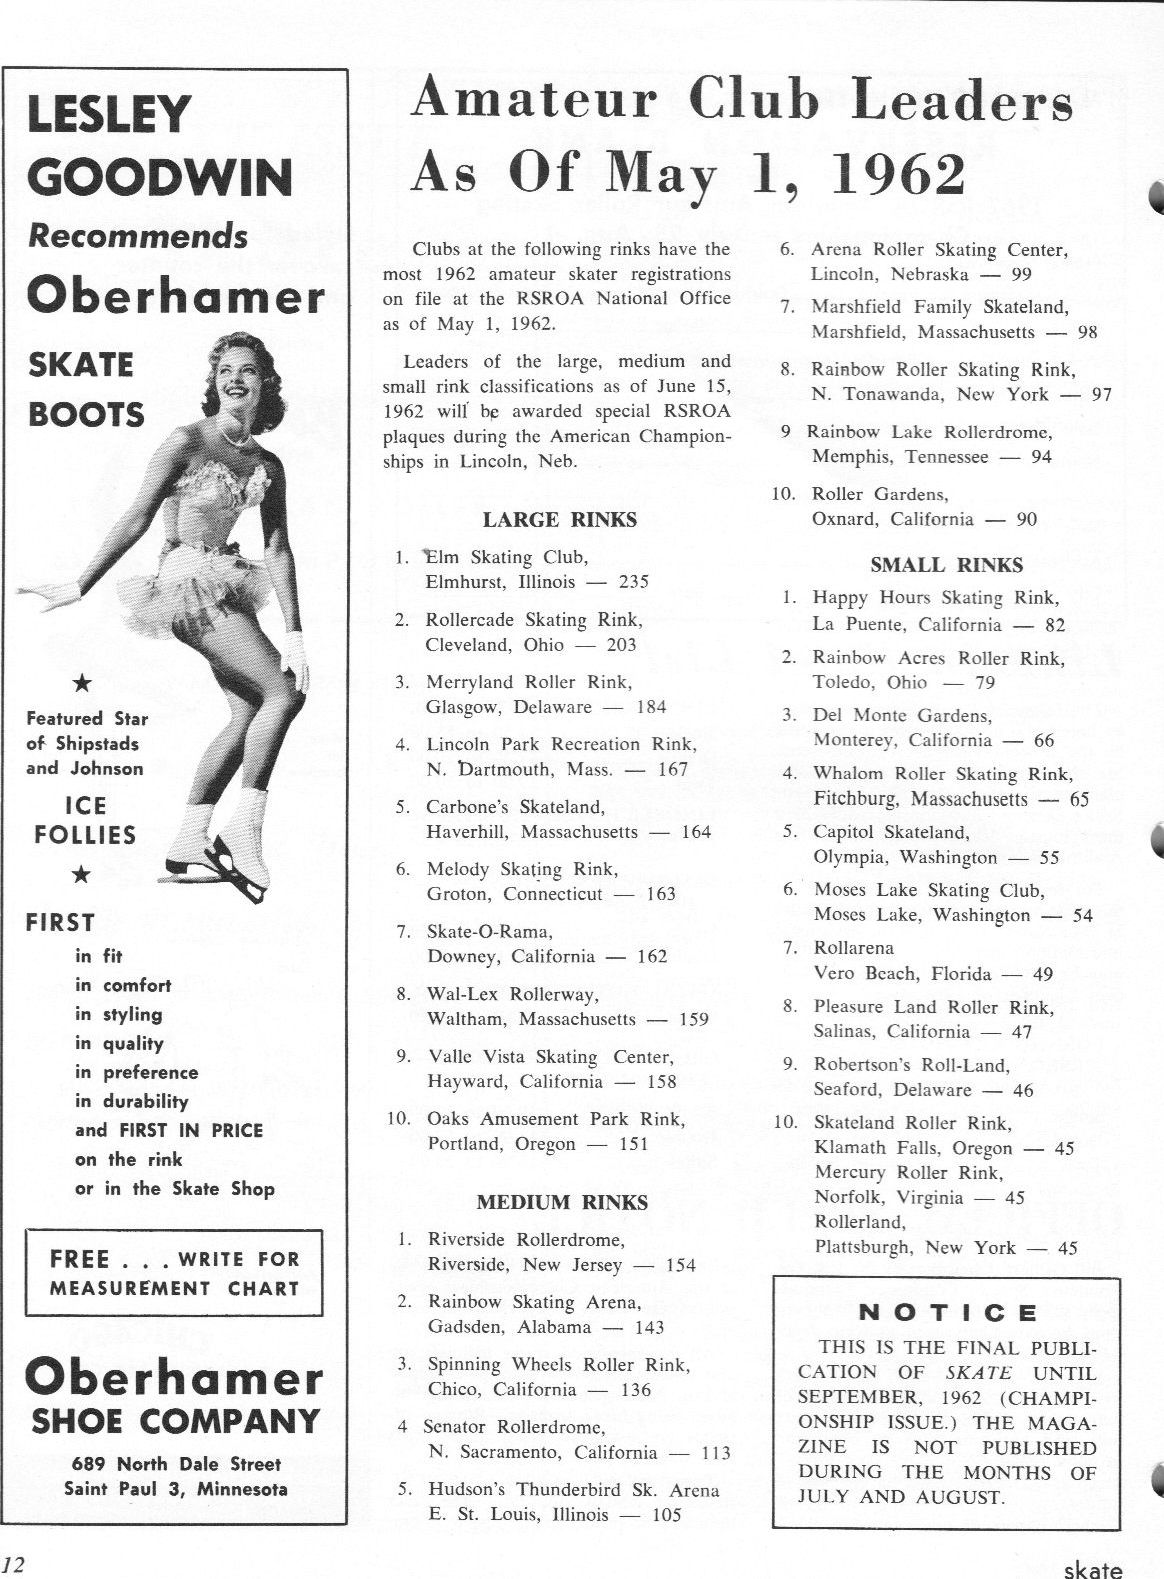 Amateur Club Leaders As of May 1, 1962 ...